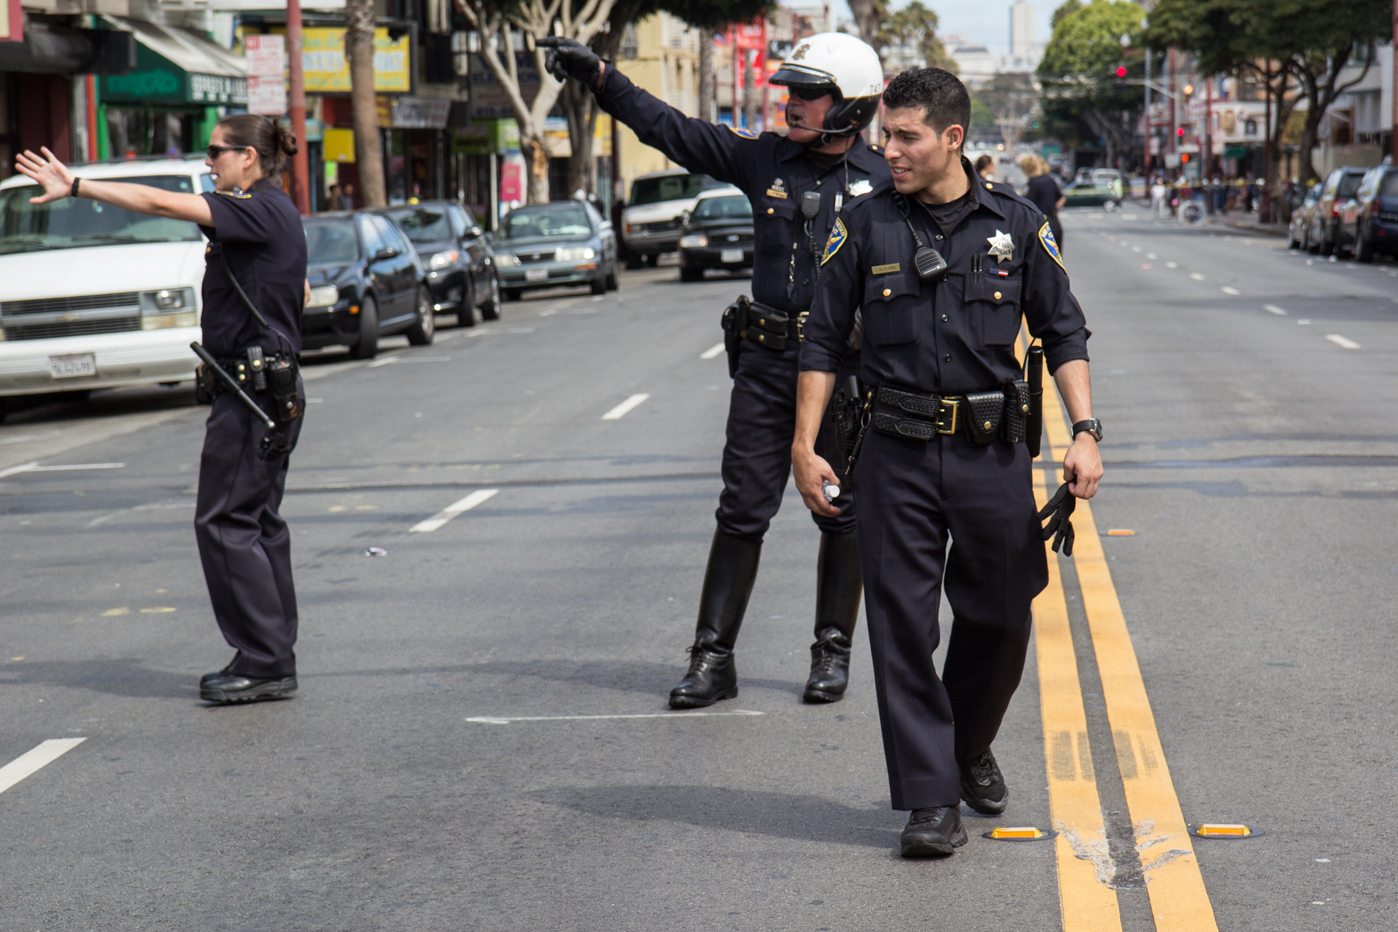 'Taking too long': What an SFPD policy for Deaf people says about police reform